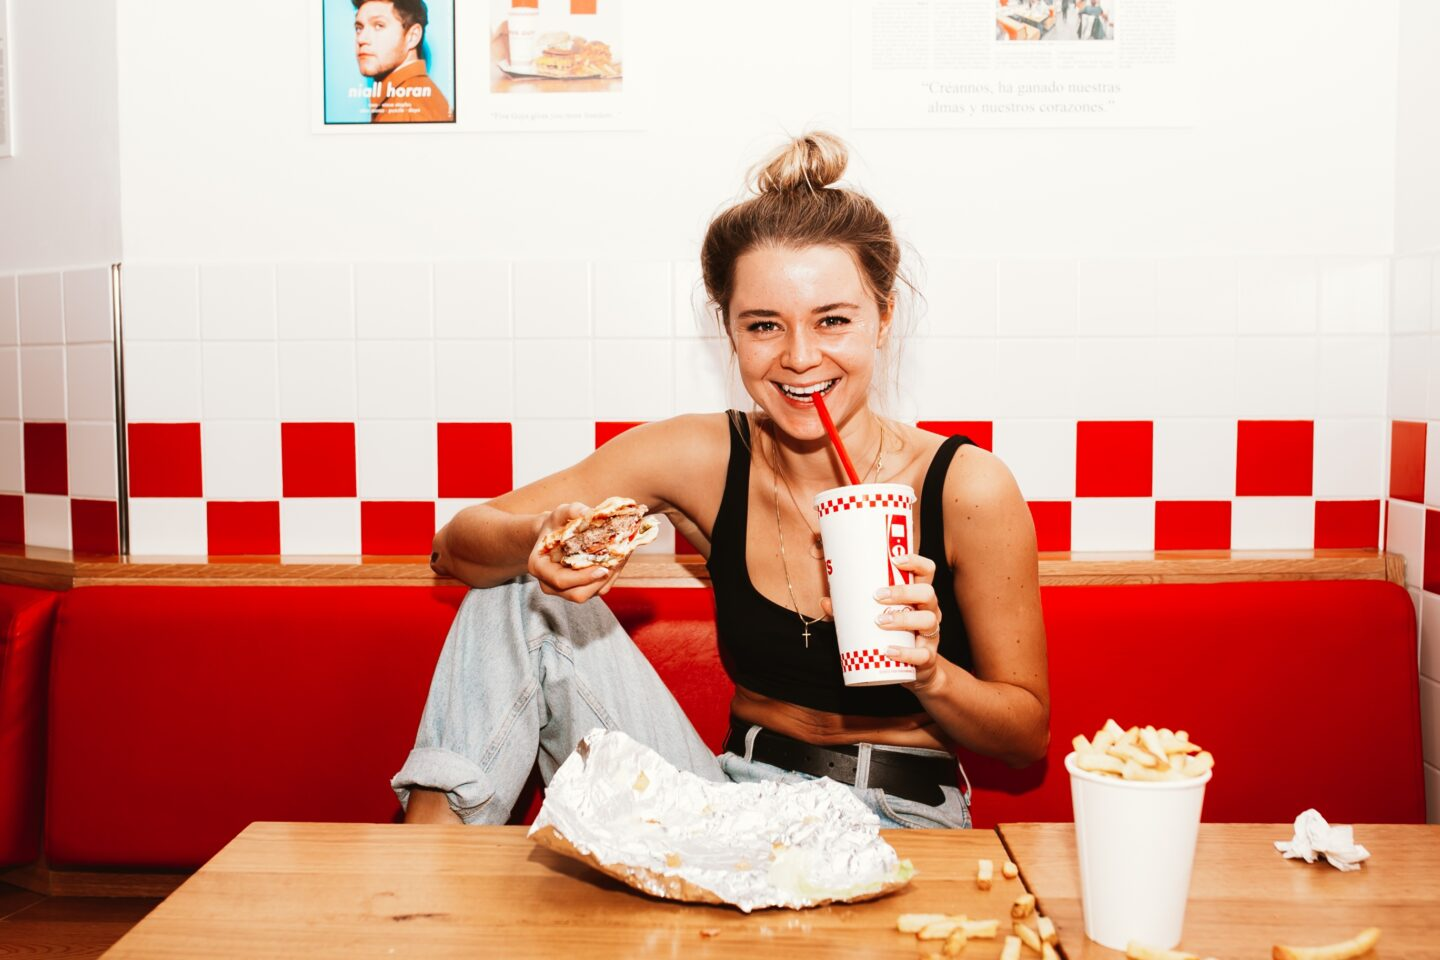 Women eating a burger - naturally skinny women don't diet and enjoy a variety of foods